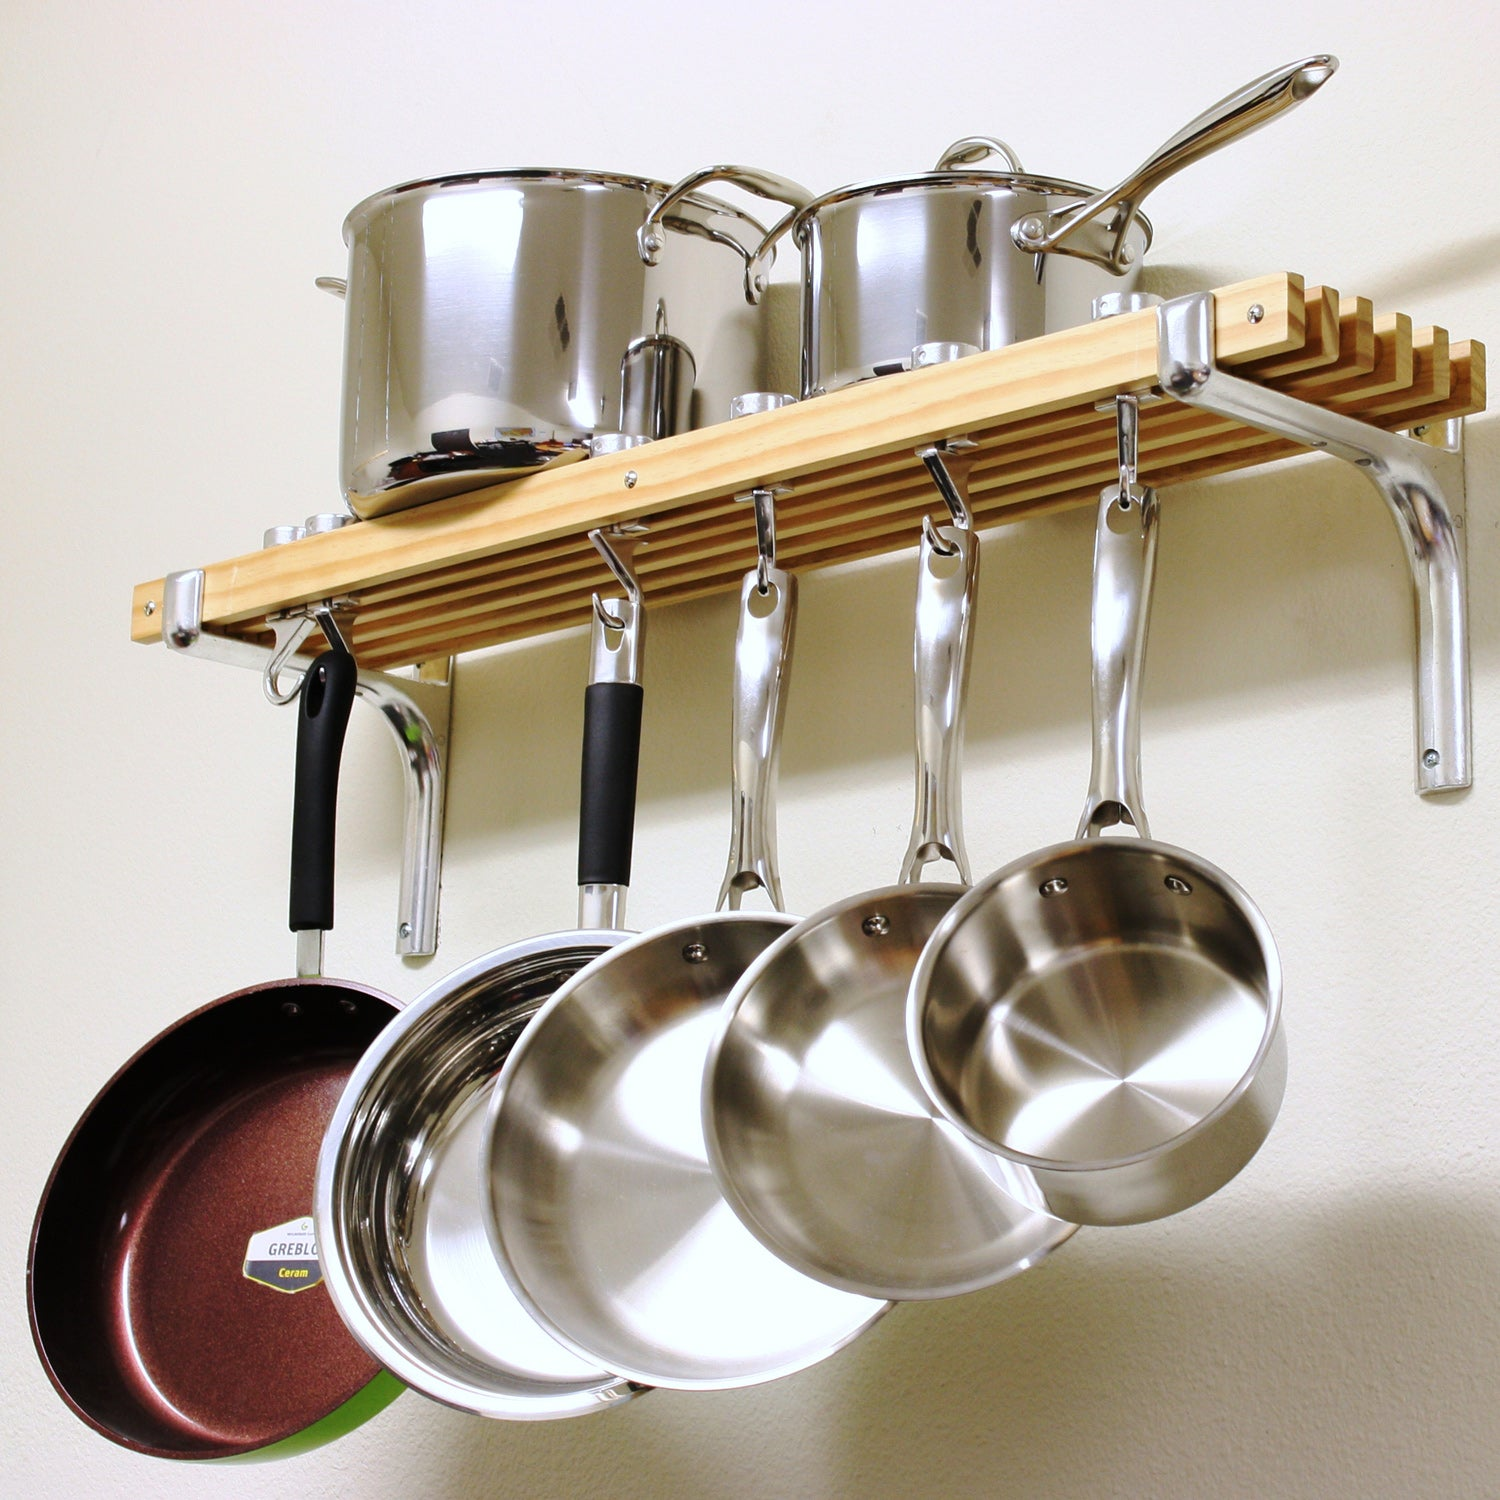 Buy Pot Racks Online at Overstock | Our Best Kitchen Storage ...